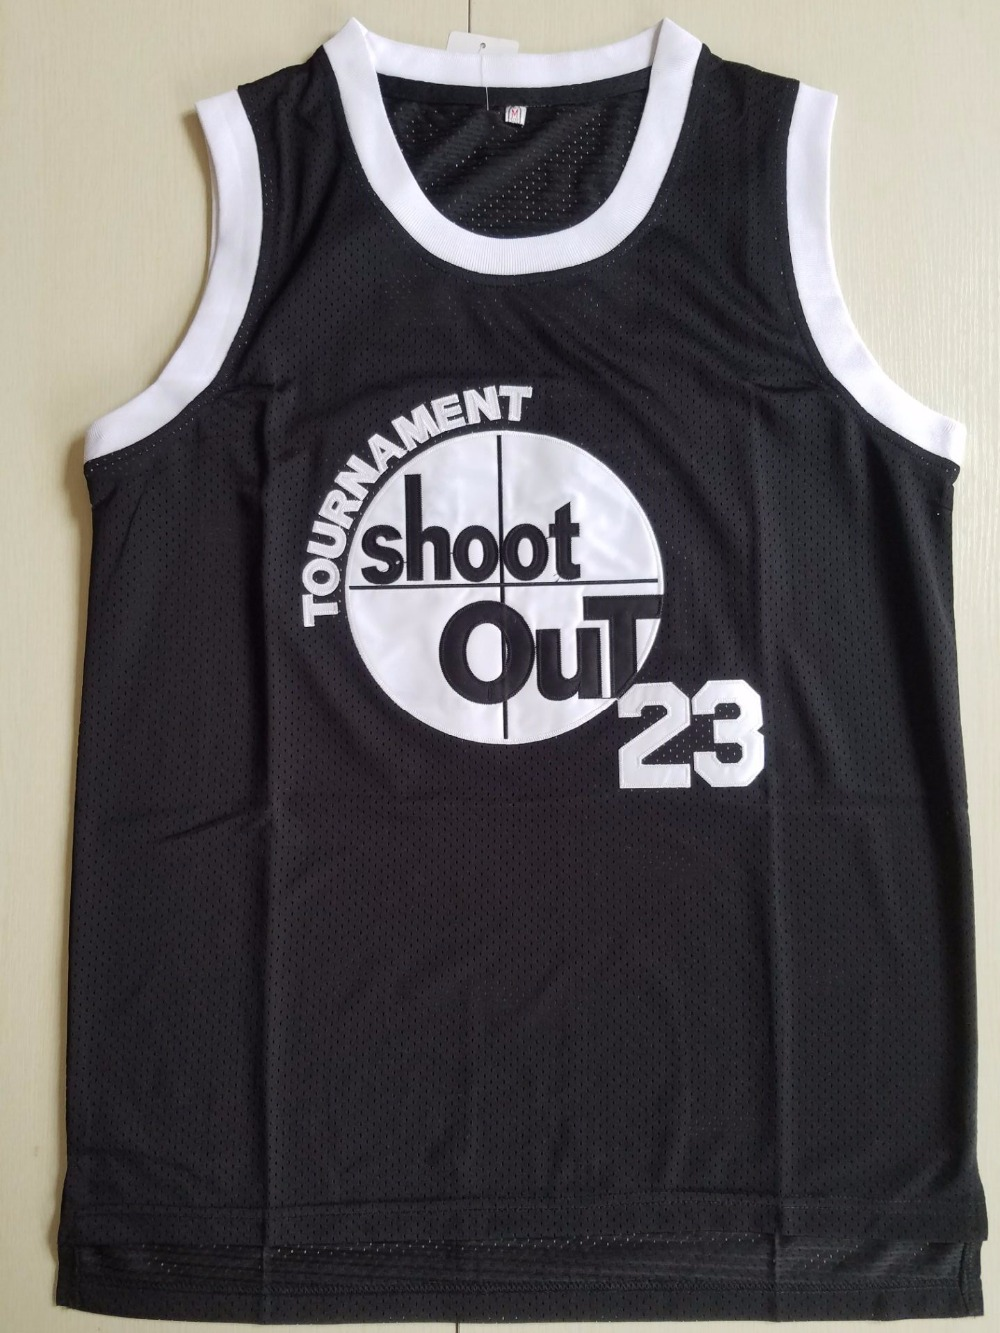 Above The Rim 23 Motaw Tournament Shoot Out Basketball Jersey Black All stitched